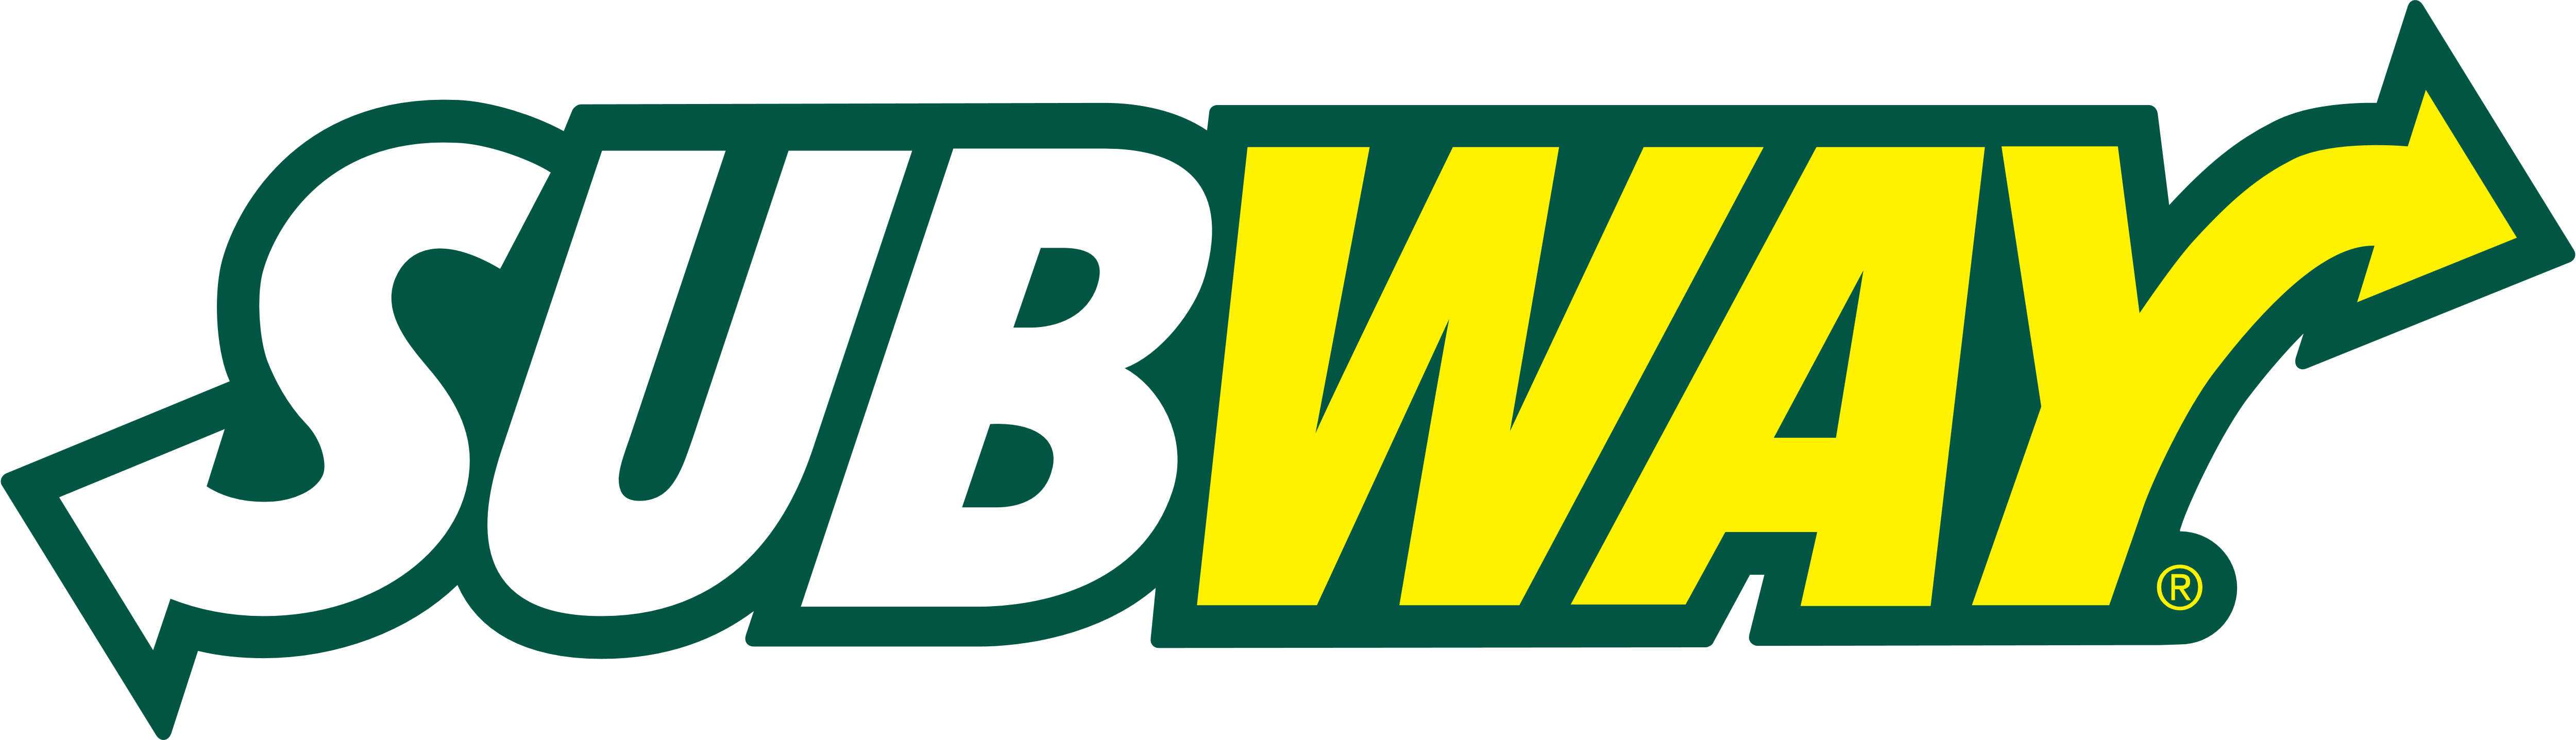 Client logo - Subway